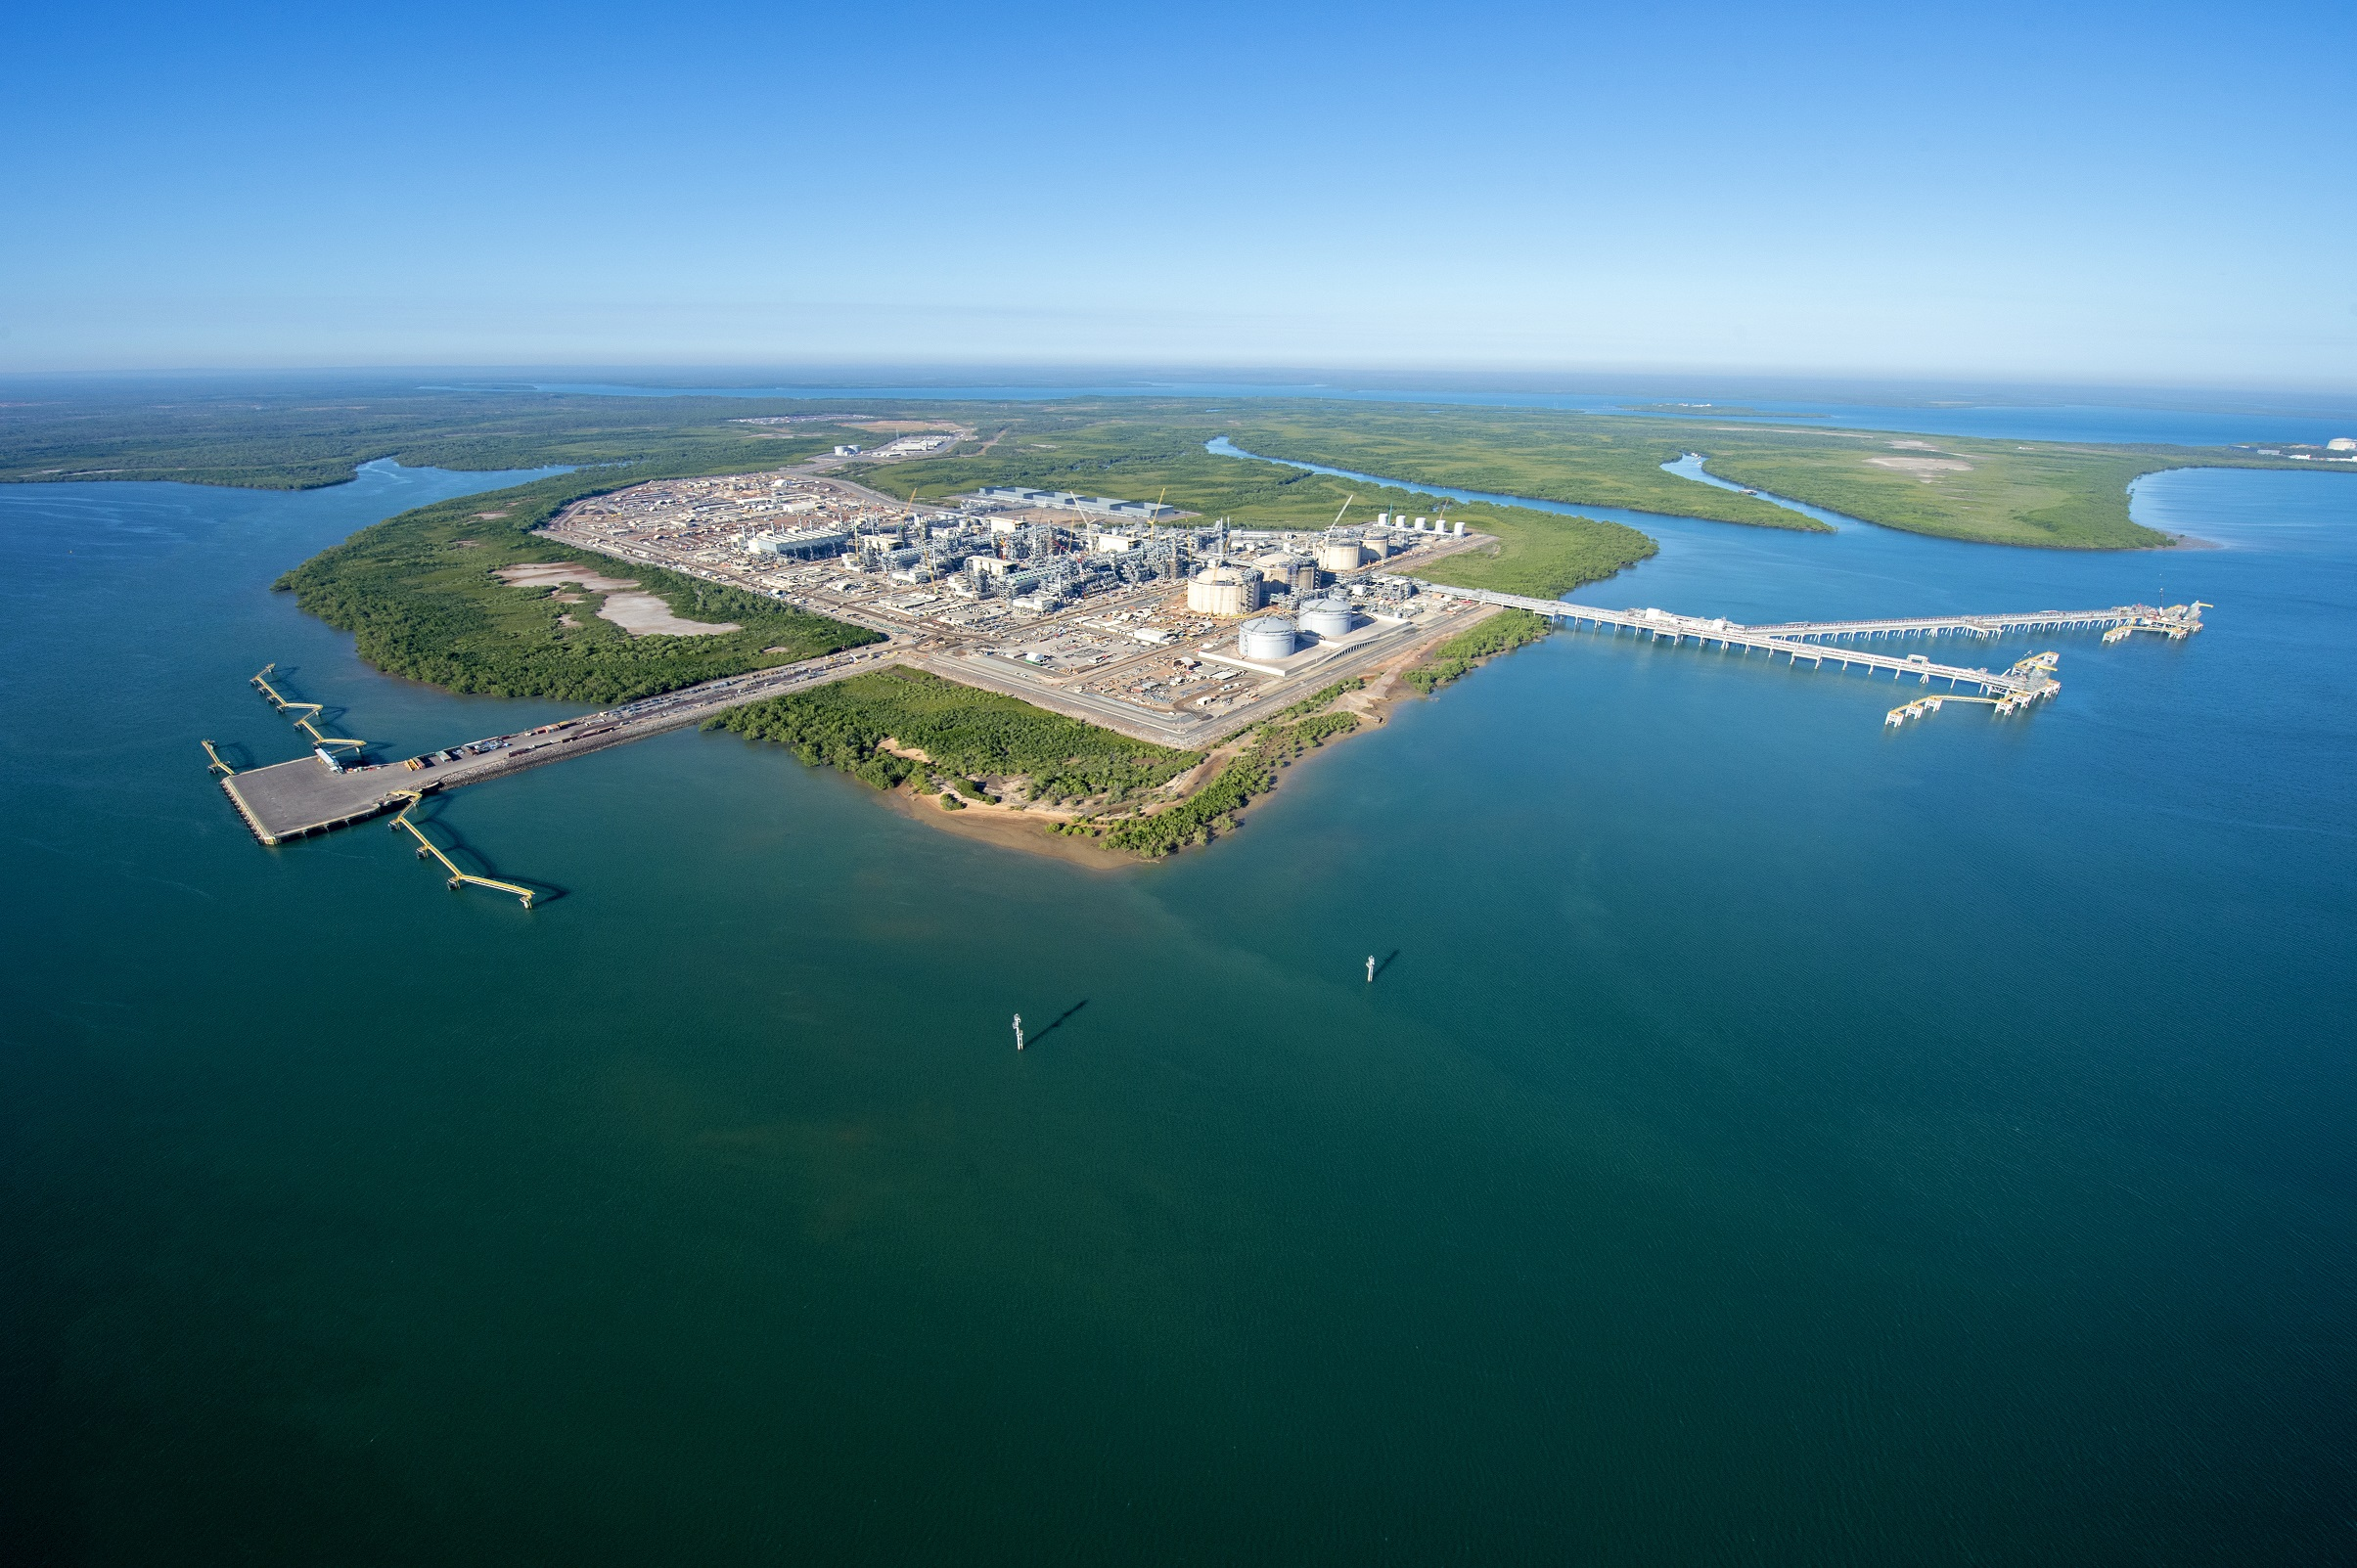 Ichthys LNG Project Bladin Point onshore facilities_July 2017 50%